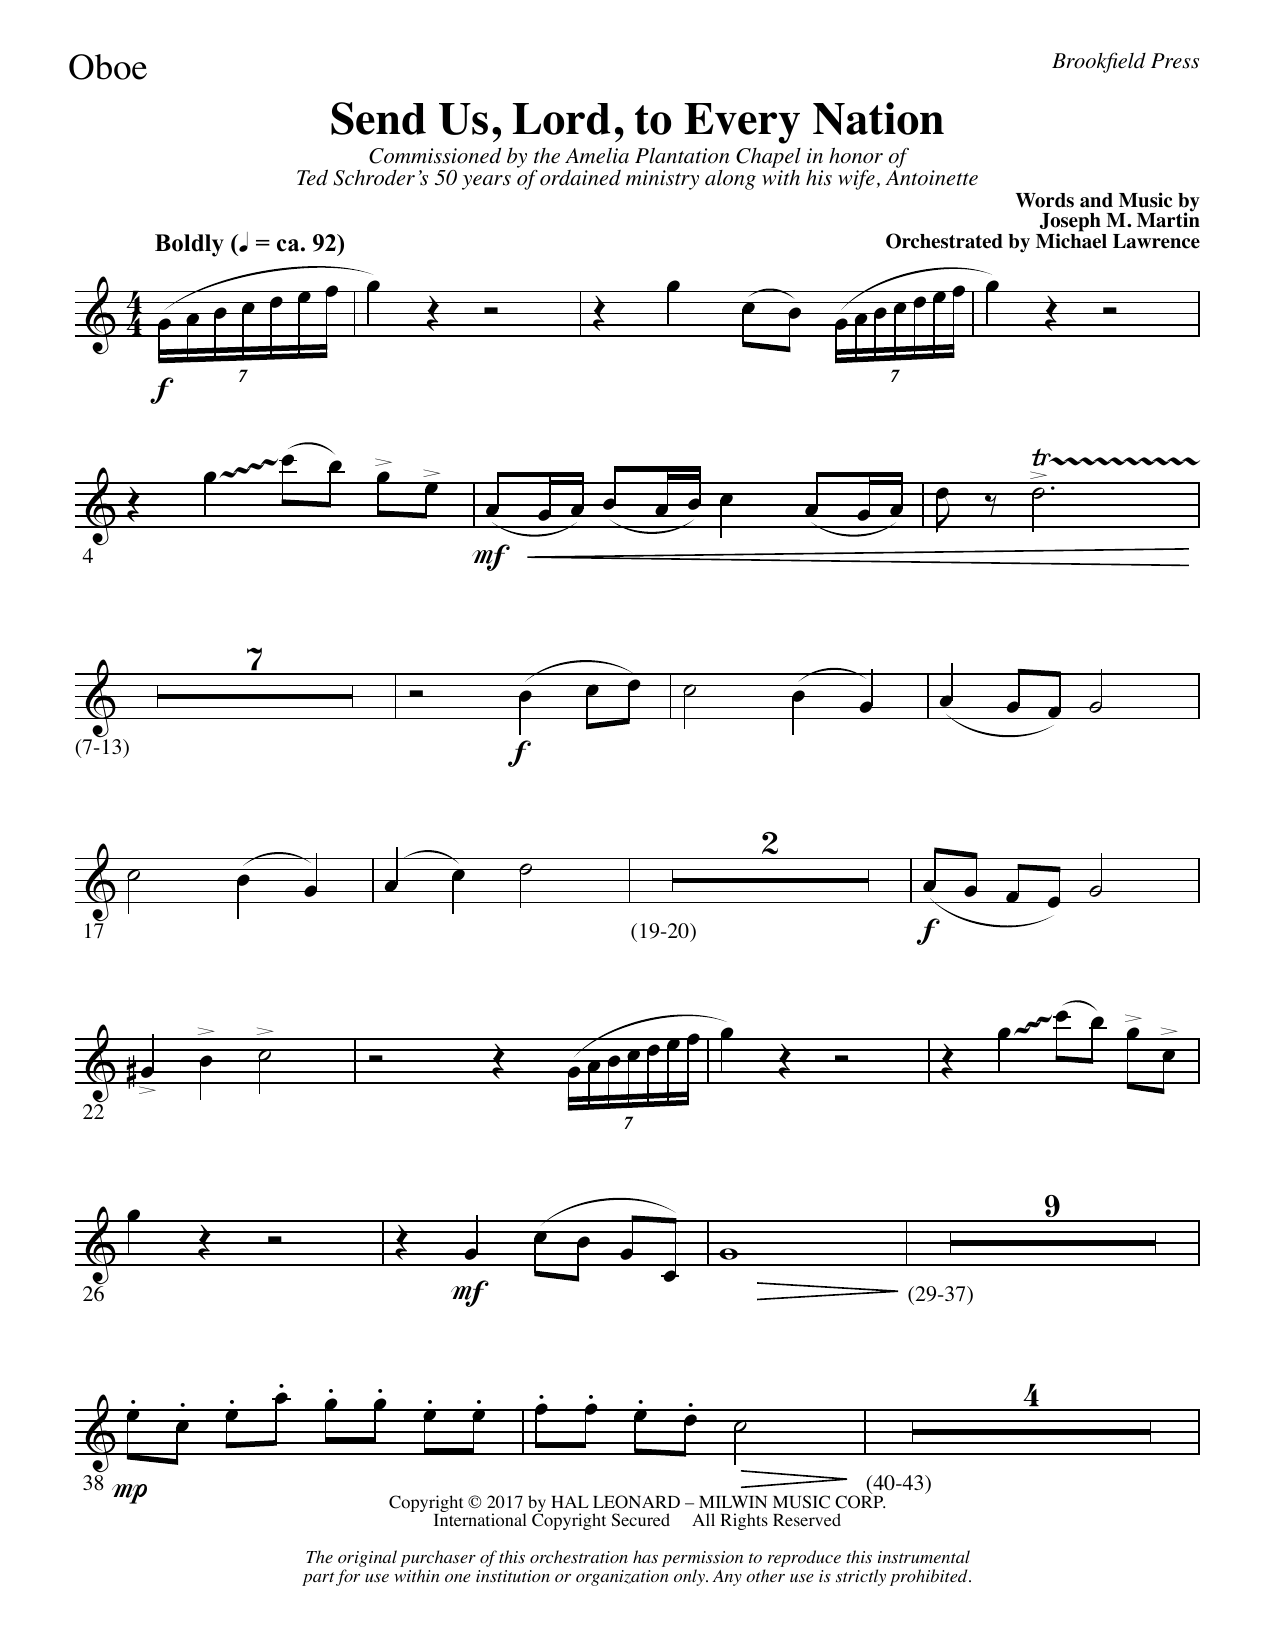 Joseph M. Martin Send Us, Lord, to Every Nation - Oboe sheet music notes and chords. Download Printable PDF.